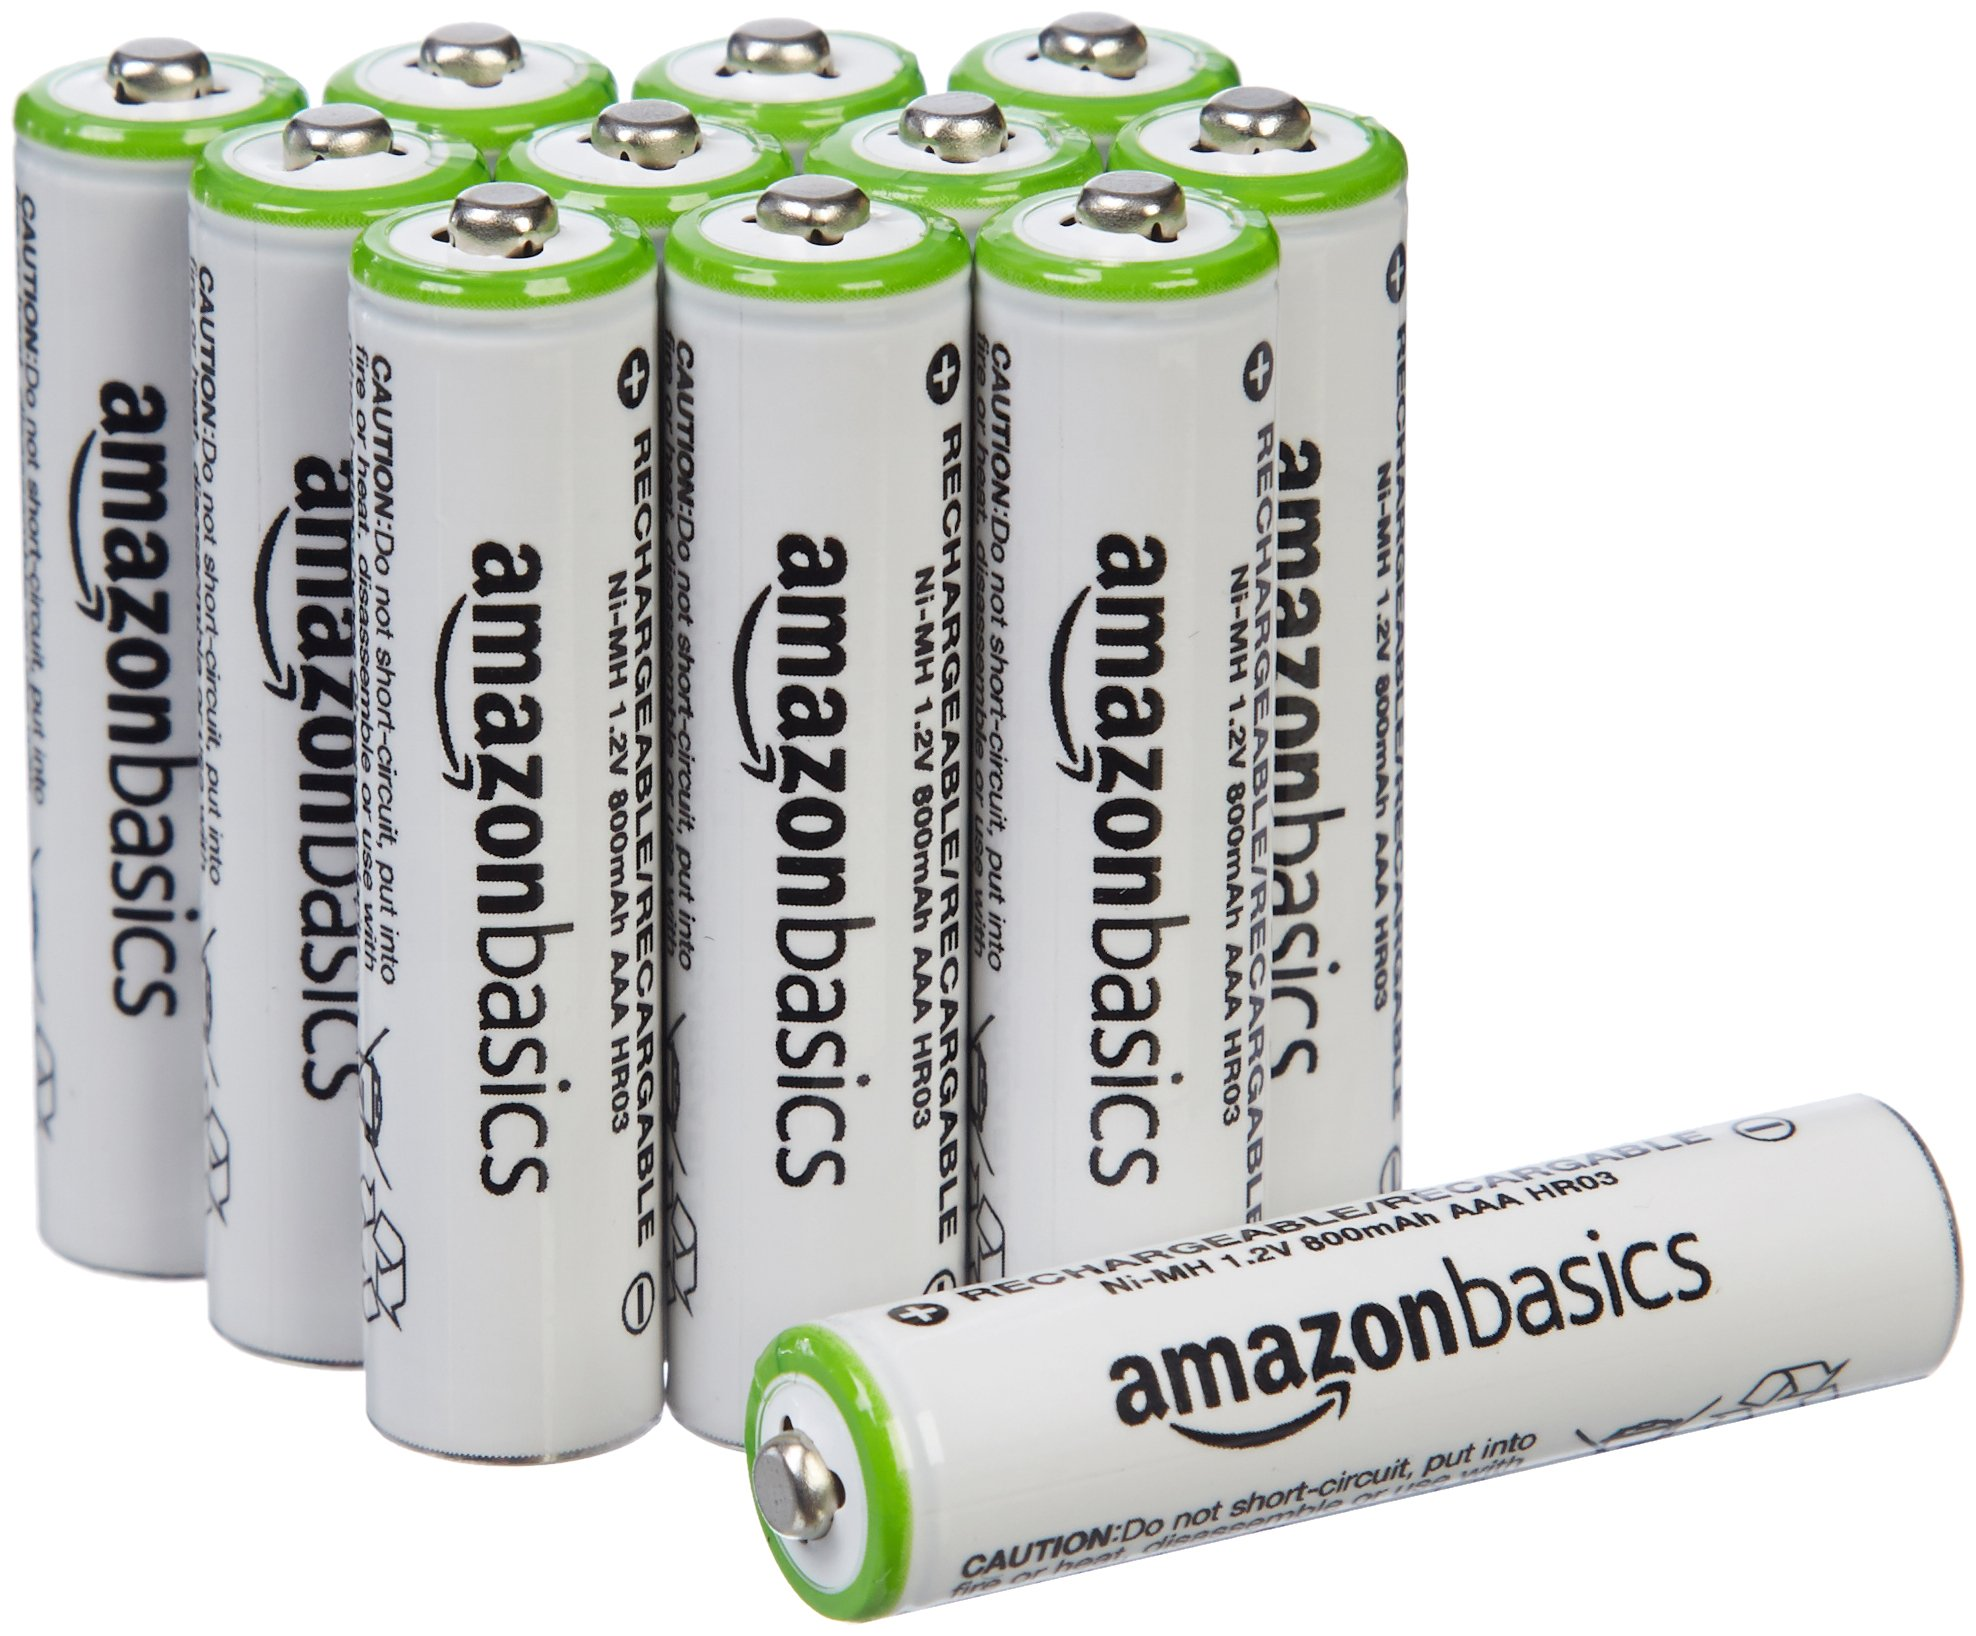 AmazonBasics AAA Rechargeable Batteries (12-Pack) - Packaging May Vary by AmazonBasics